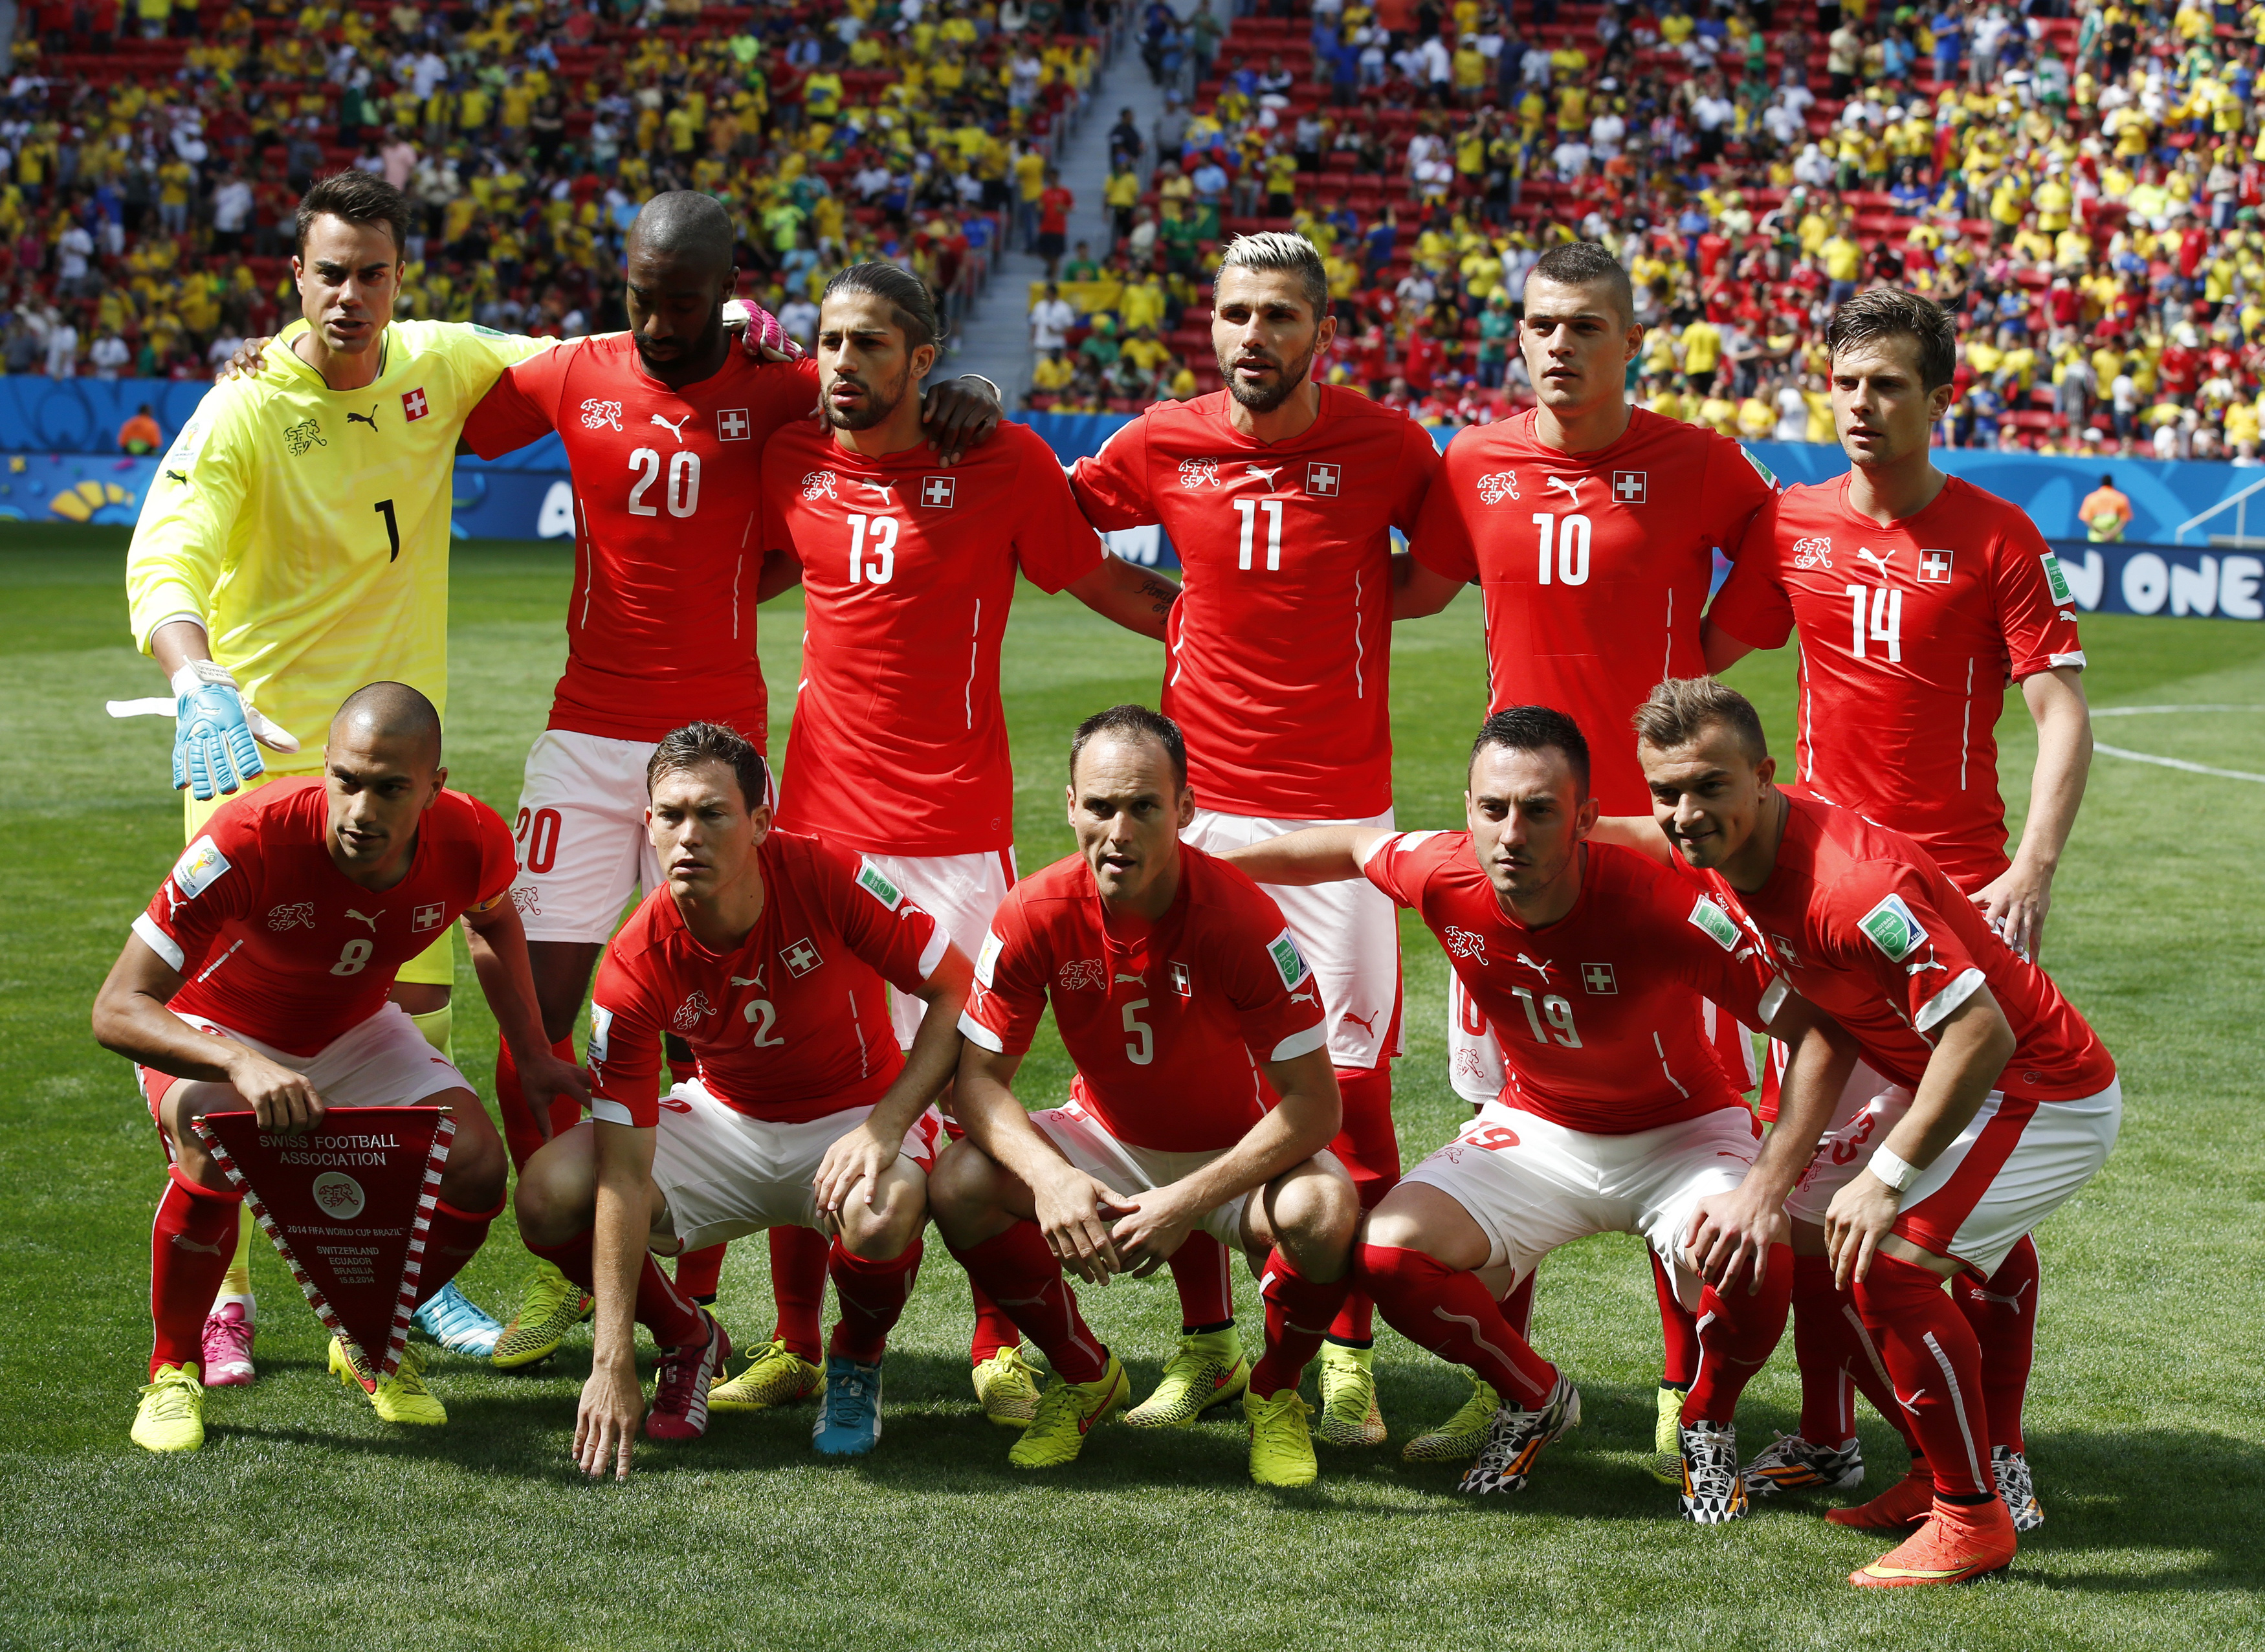 Switzerland's national soccer players pose for a team photo before their 2014 World Cup Group E soccer match against Ecuador at the Brasilia national stadium in Brasilia